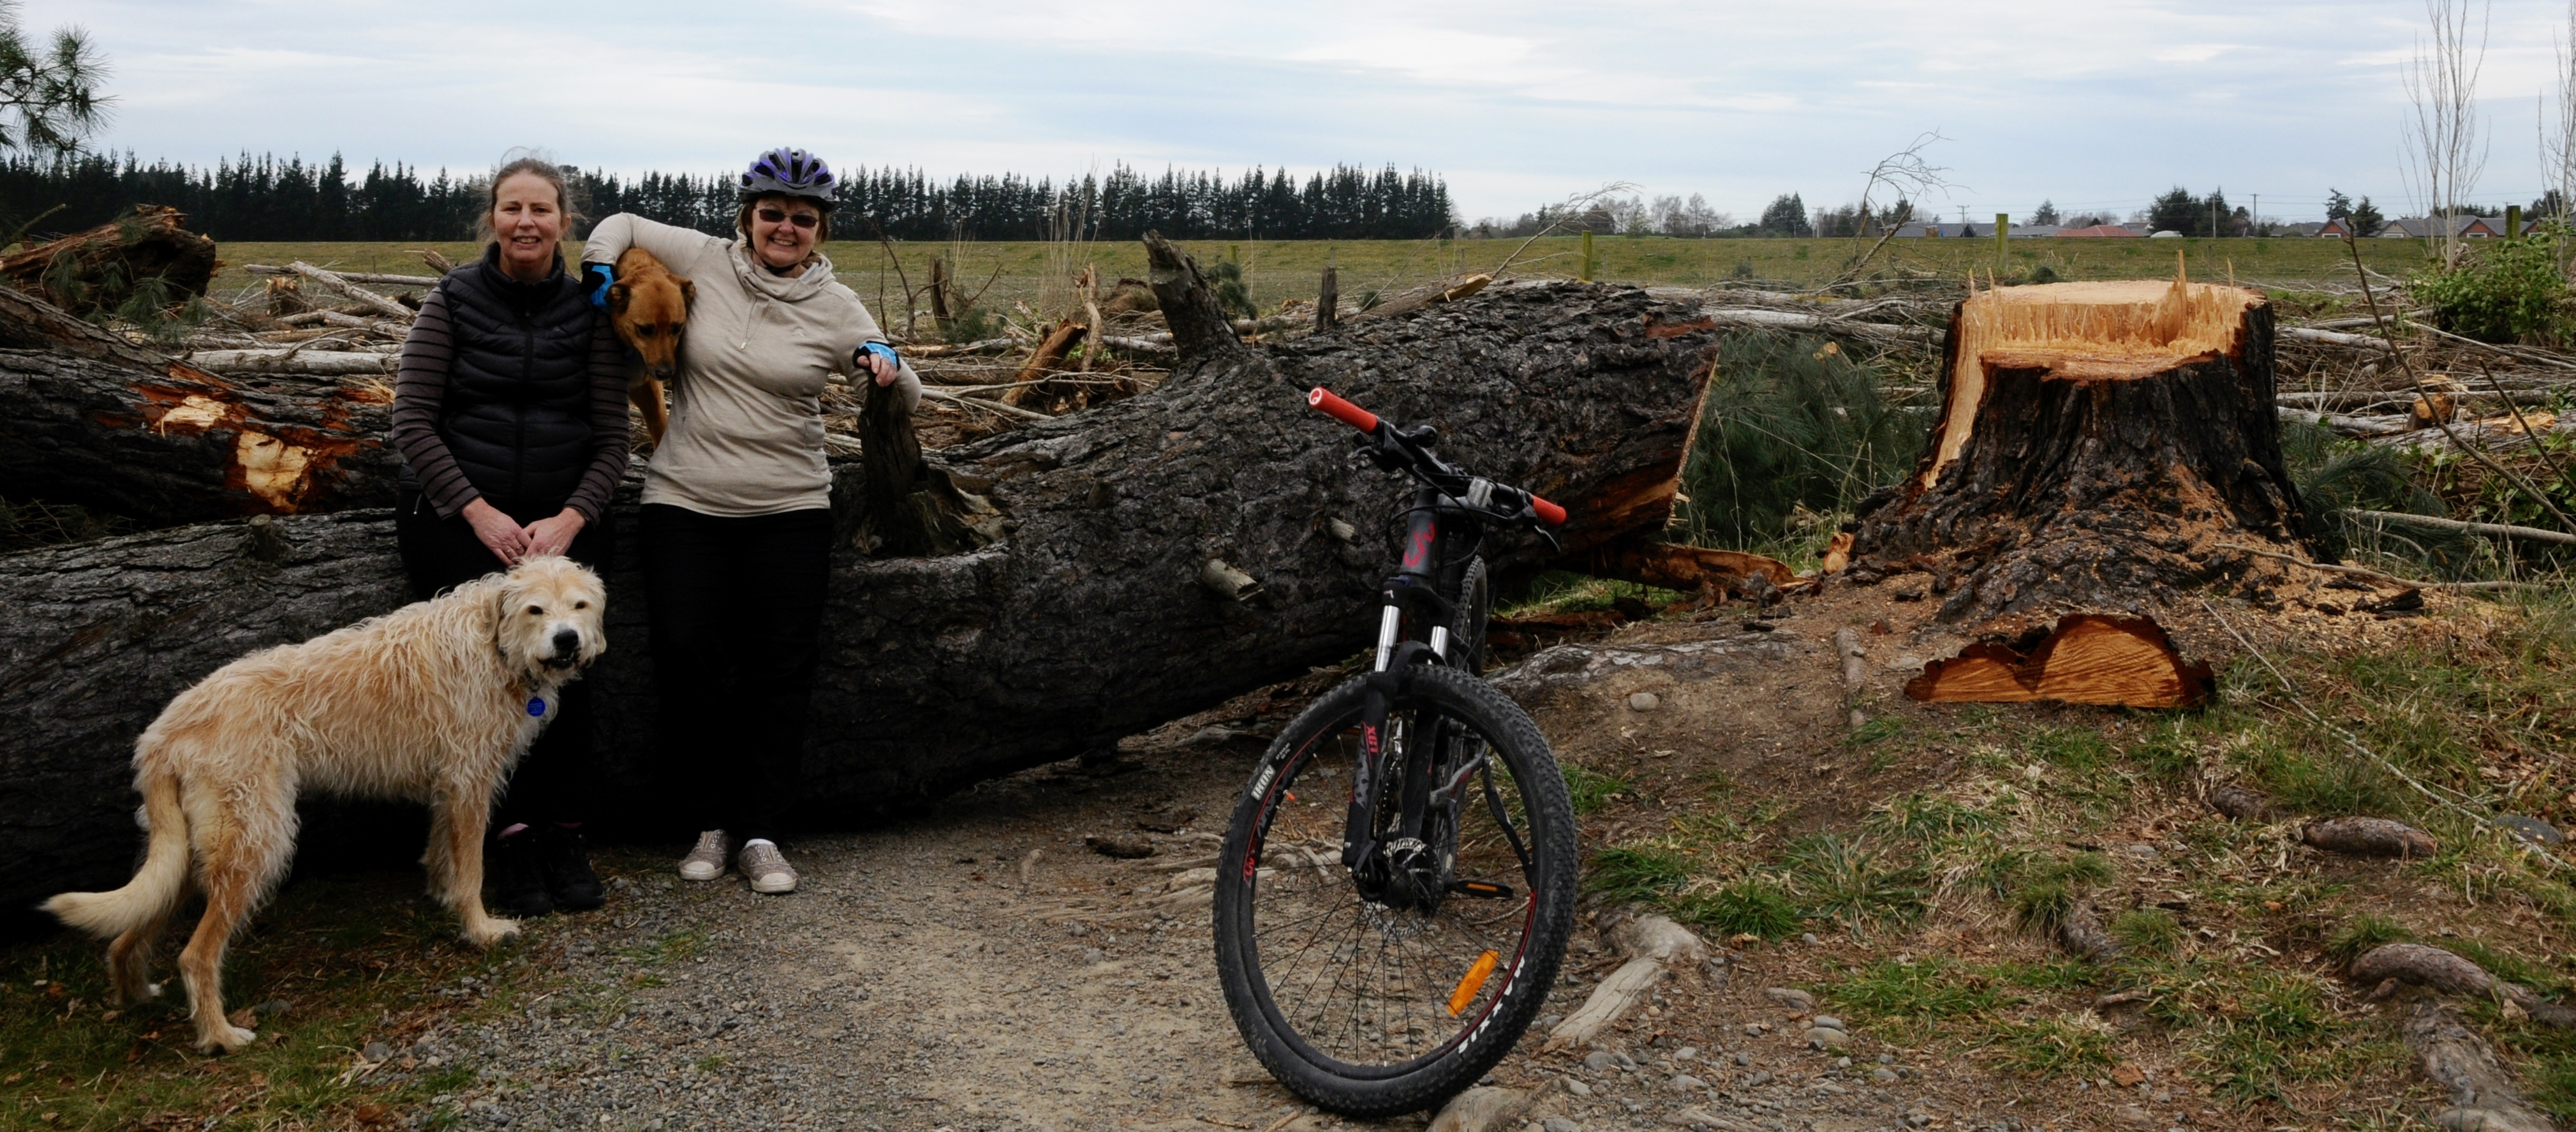 Alison Clay, left, of Rangiora, with her dog Jafa, and Bernadette Canavan, of Rangiora, with...